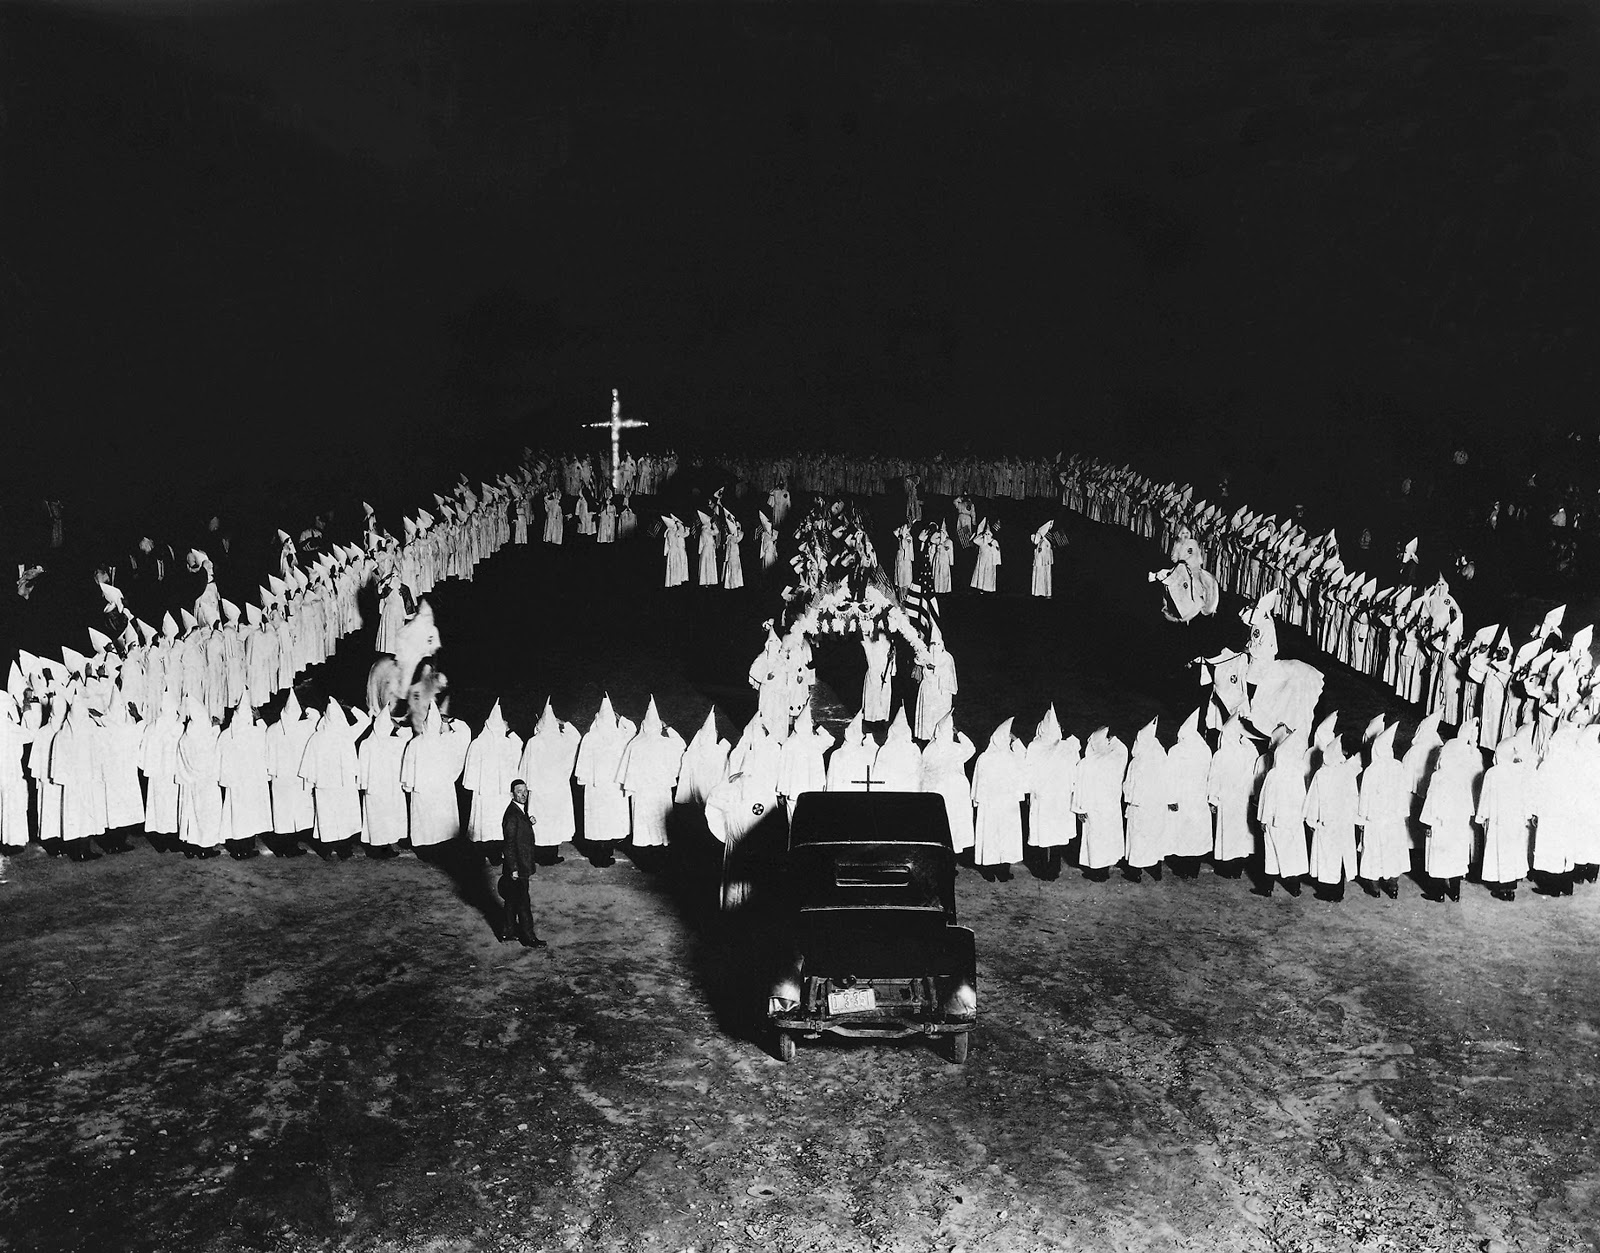 Not now silly the birthday of the ku klux klan throwback thursday the birthday of the ku klux klan throwback thursday biocorpaavc Images